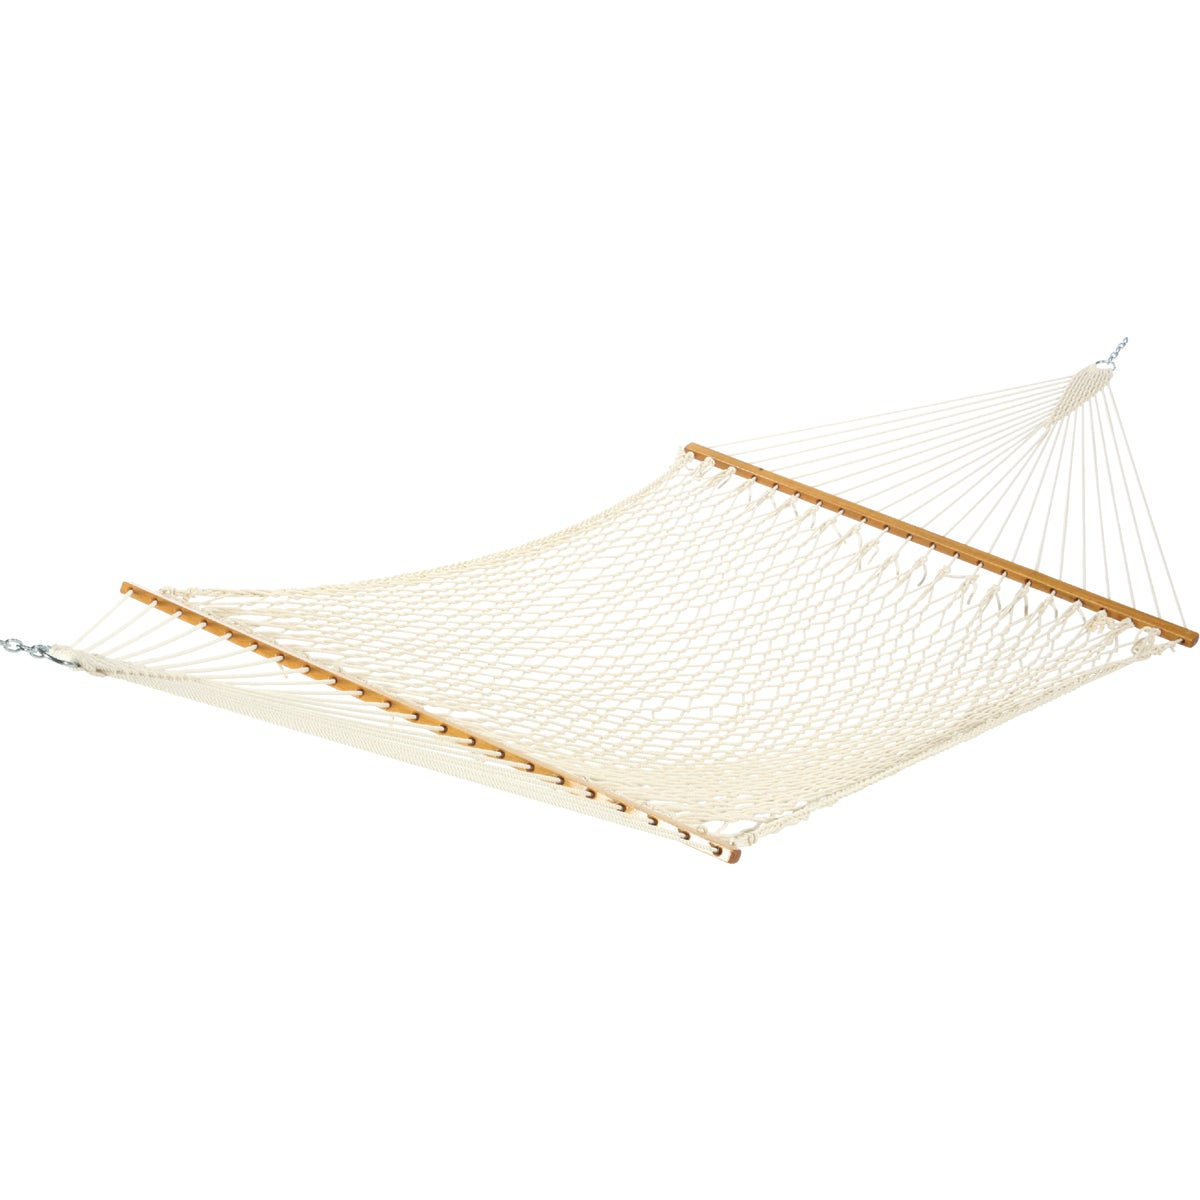 DLX POLY ROPE HAMMOCK - PC-14PCW by The Hammock Source